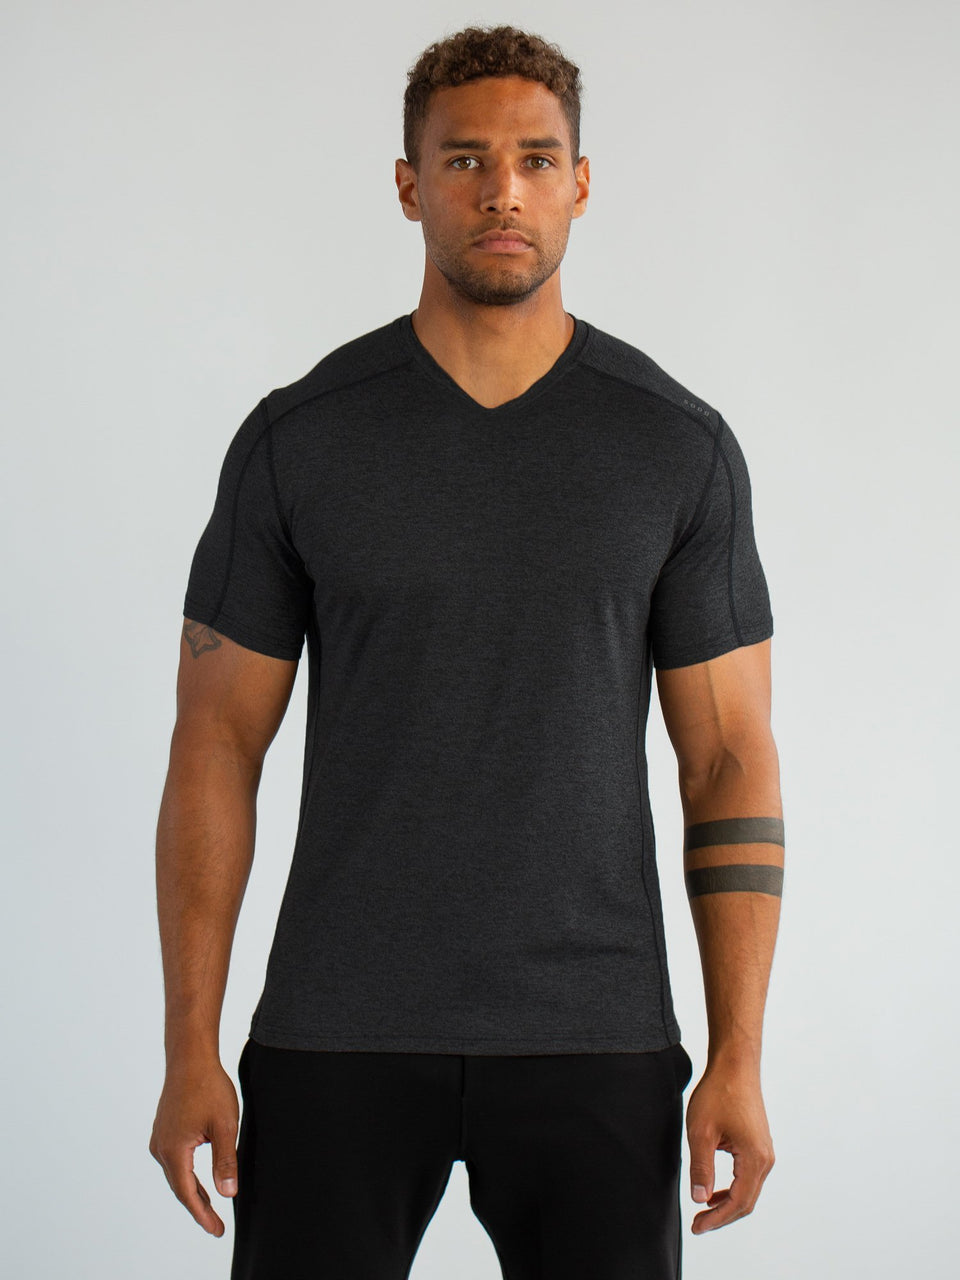 SS High V - Black - Medium - SODO Apparel - Limited Inventory